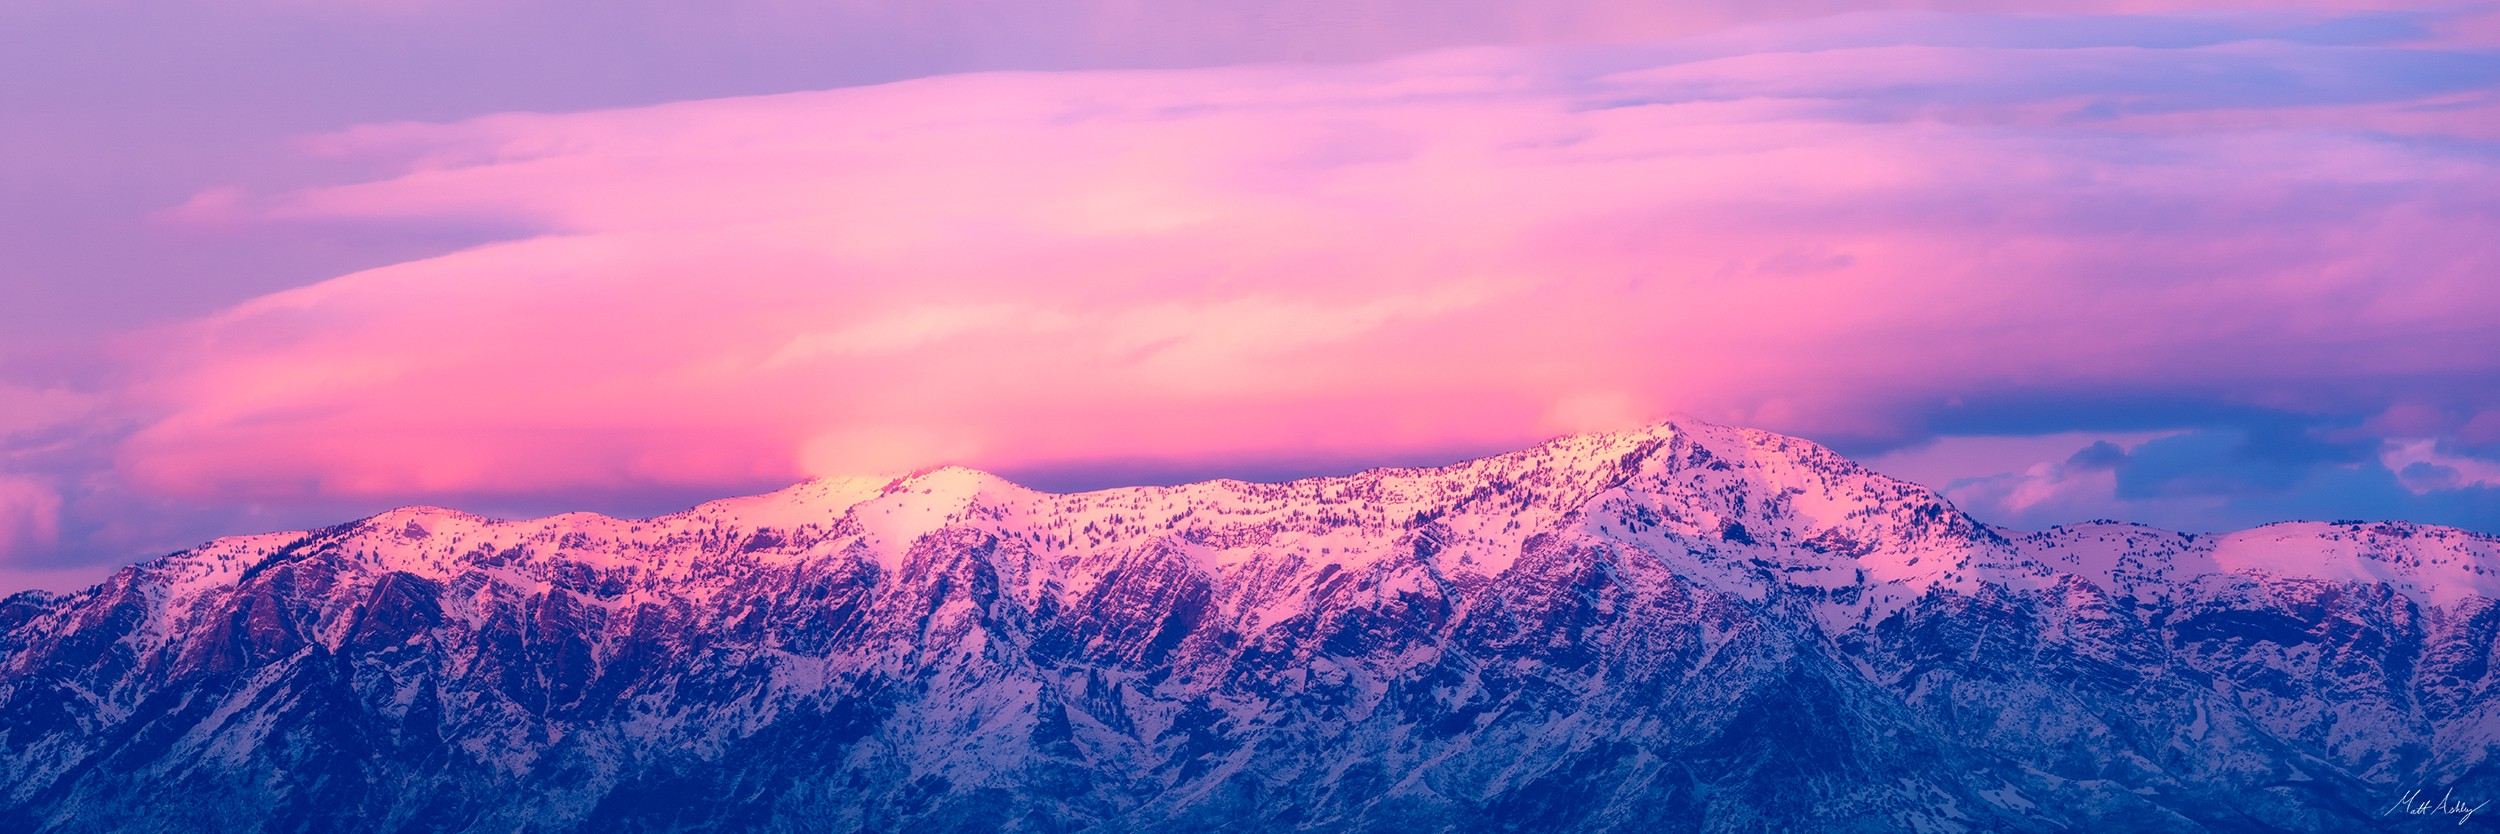 Mountain range at sunset under a brilliant pink sky.